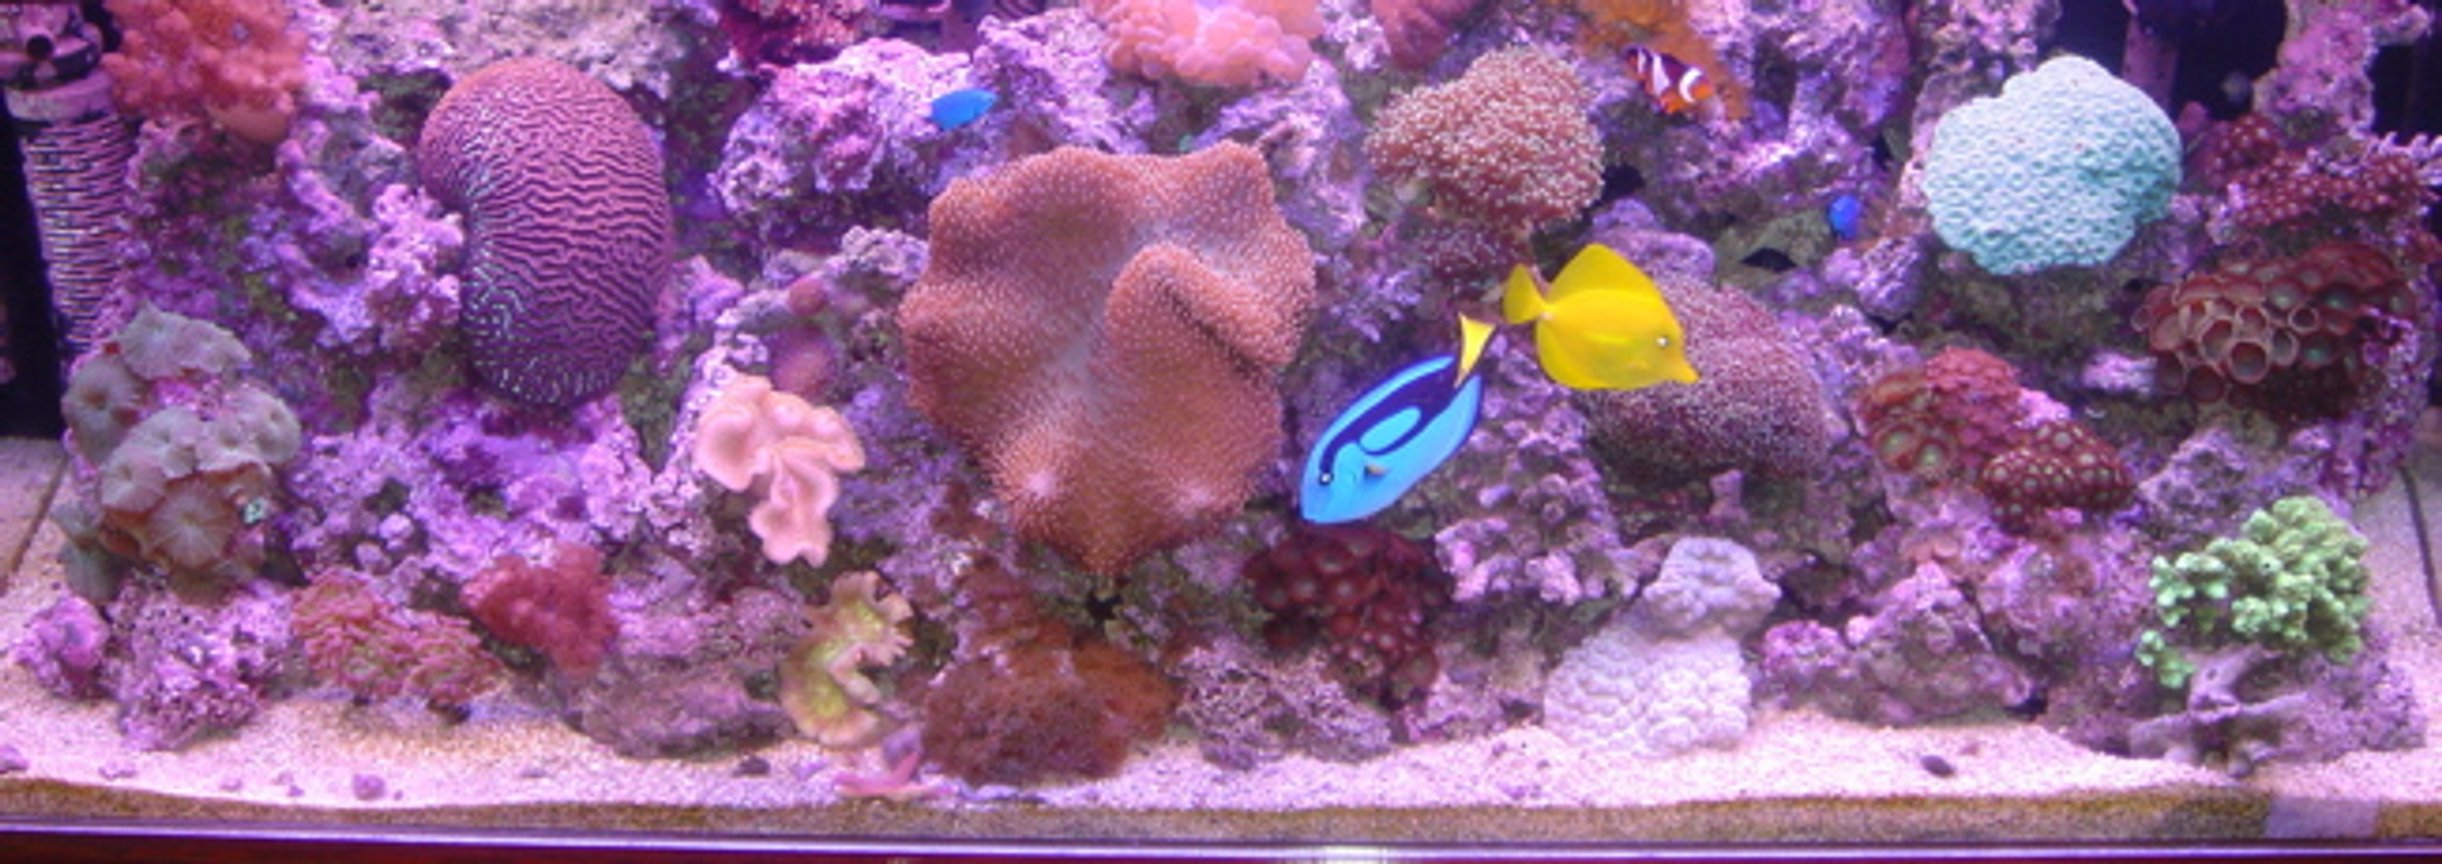 60 gallons reef tank (mostly live coral and fish) - Ratings of less than 7 will not be accepted